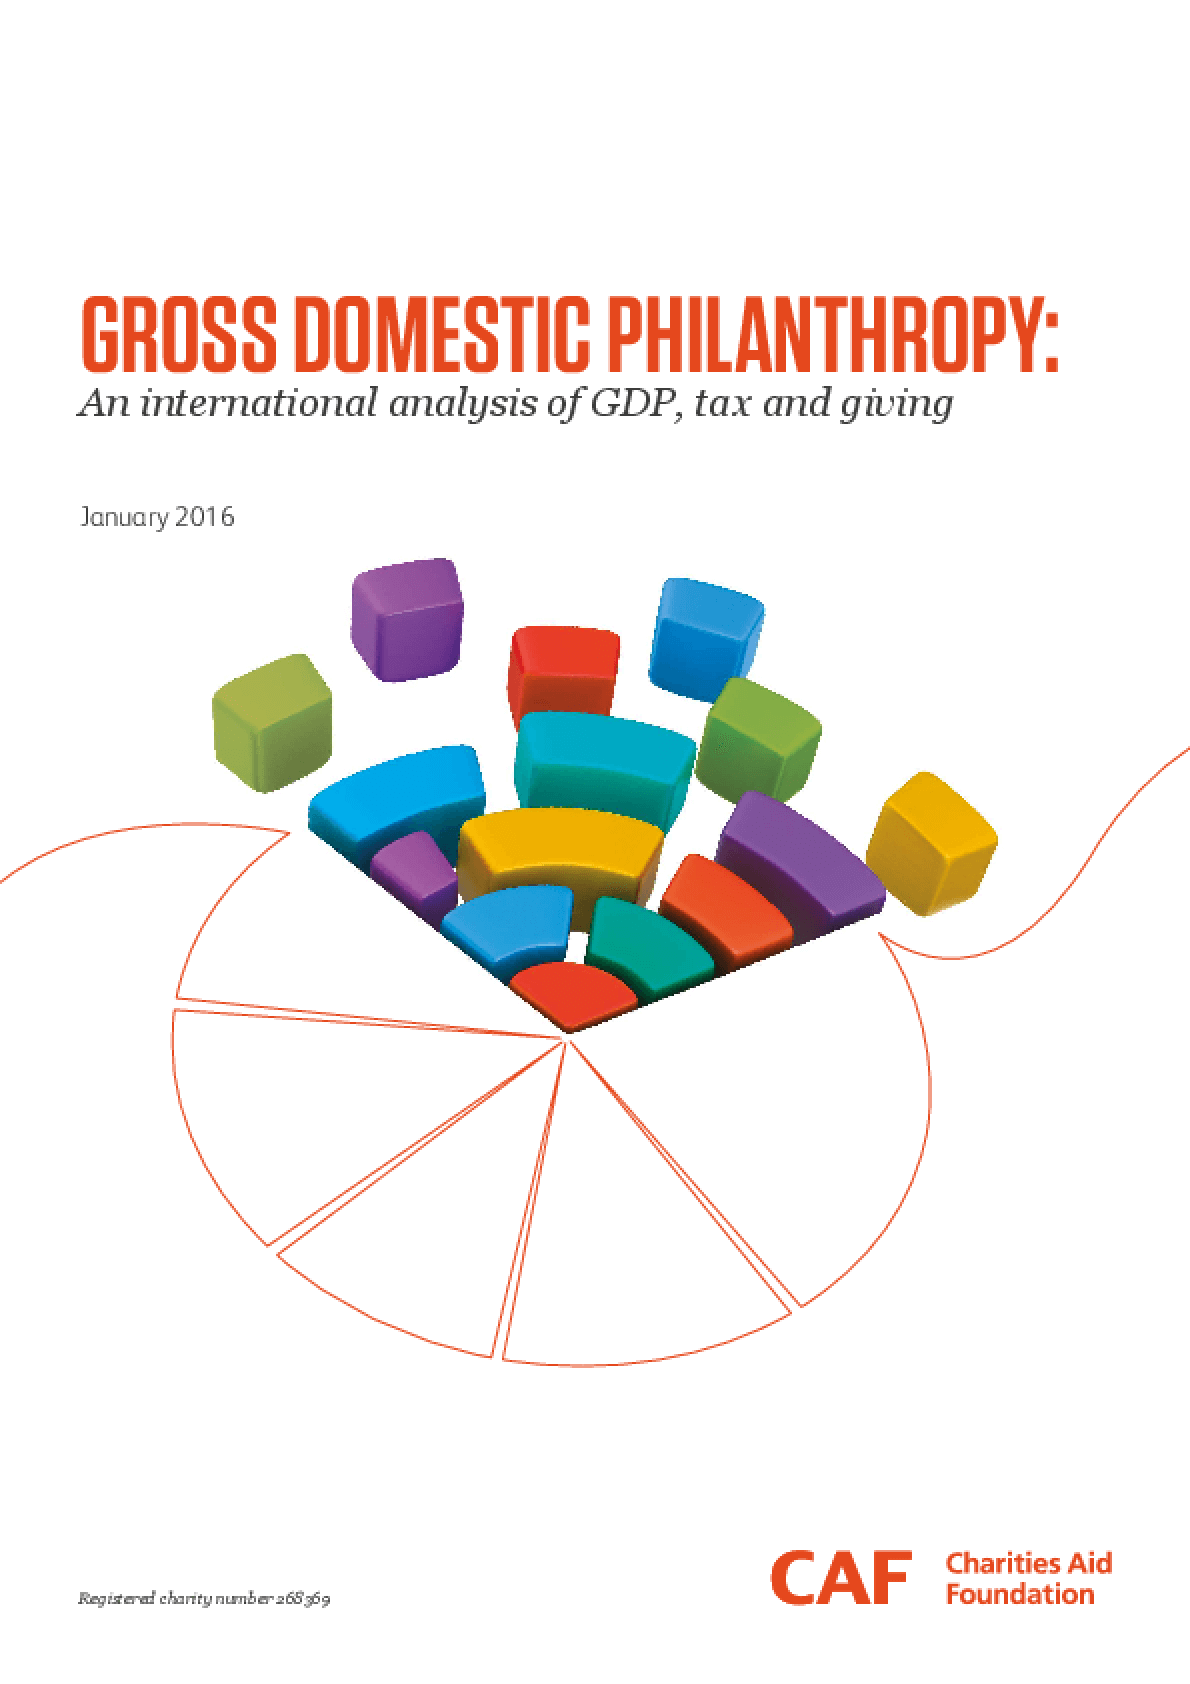 Gross Domestic Philanthropy : An International Analysis of GDP, Tax and Giving